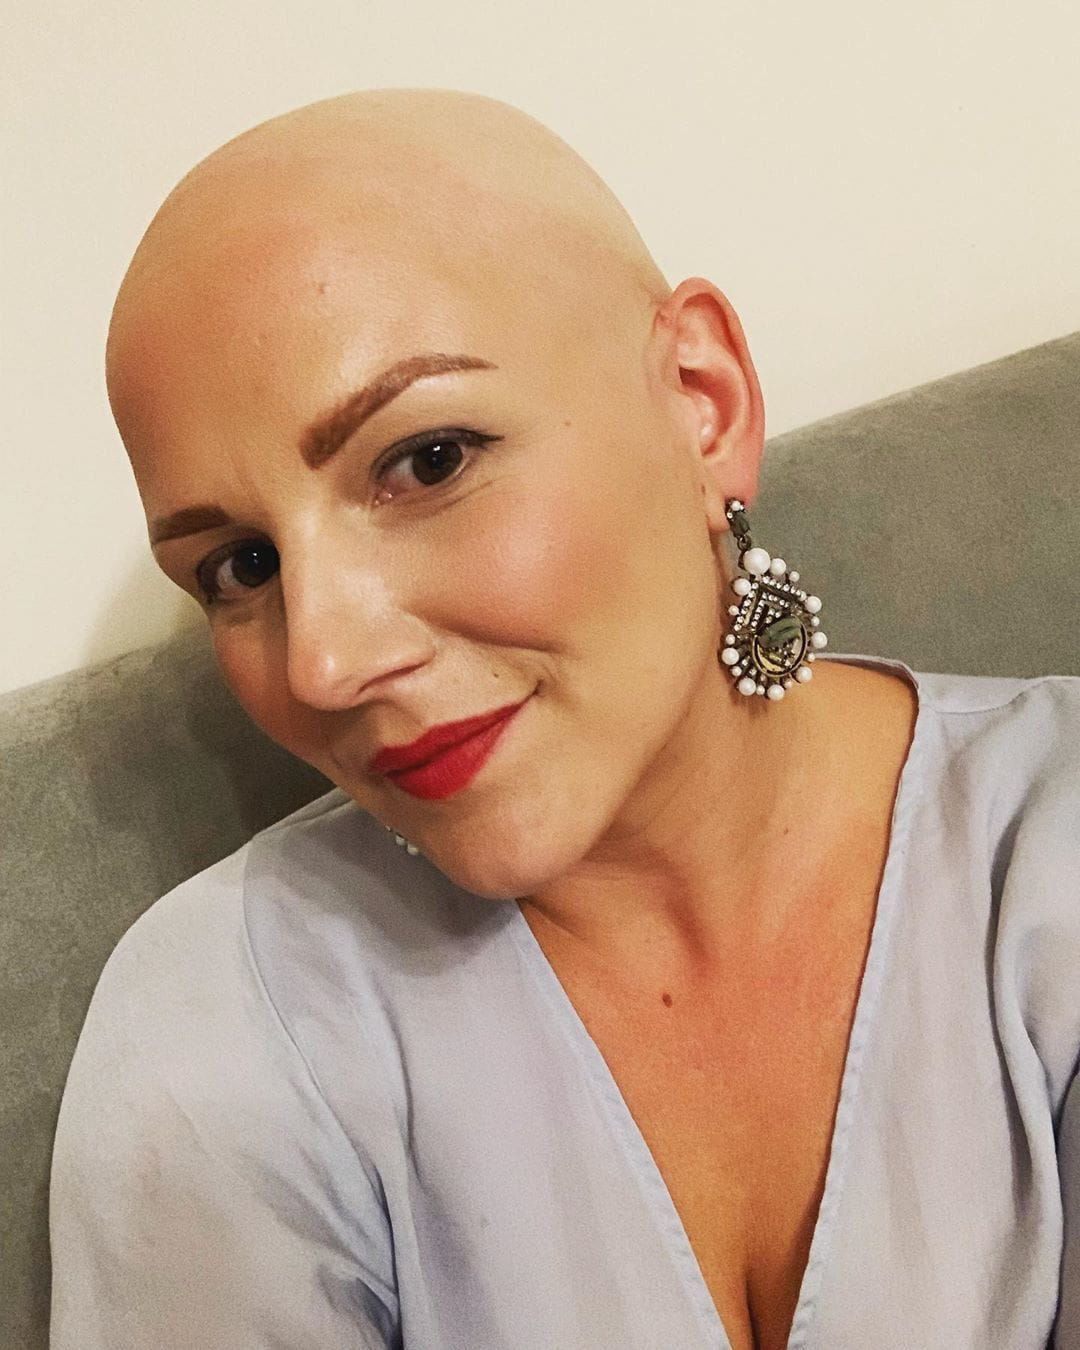 Alopecia sufferer Jo Tucker with bald head